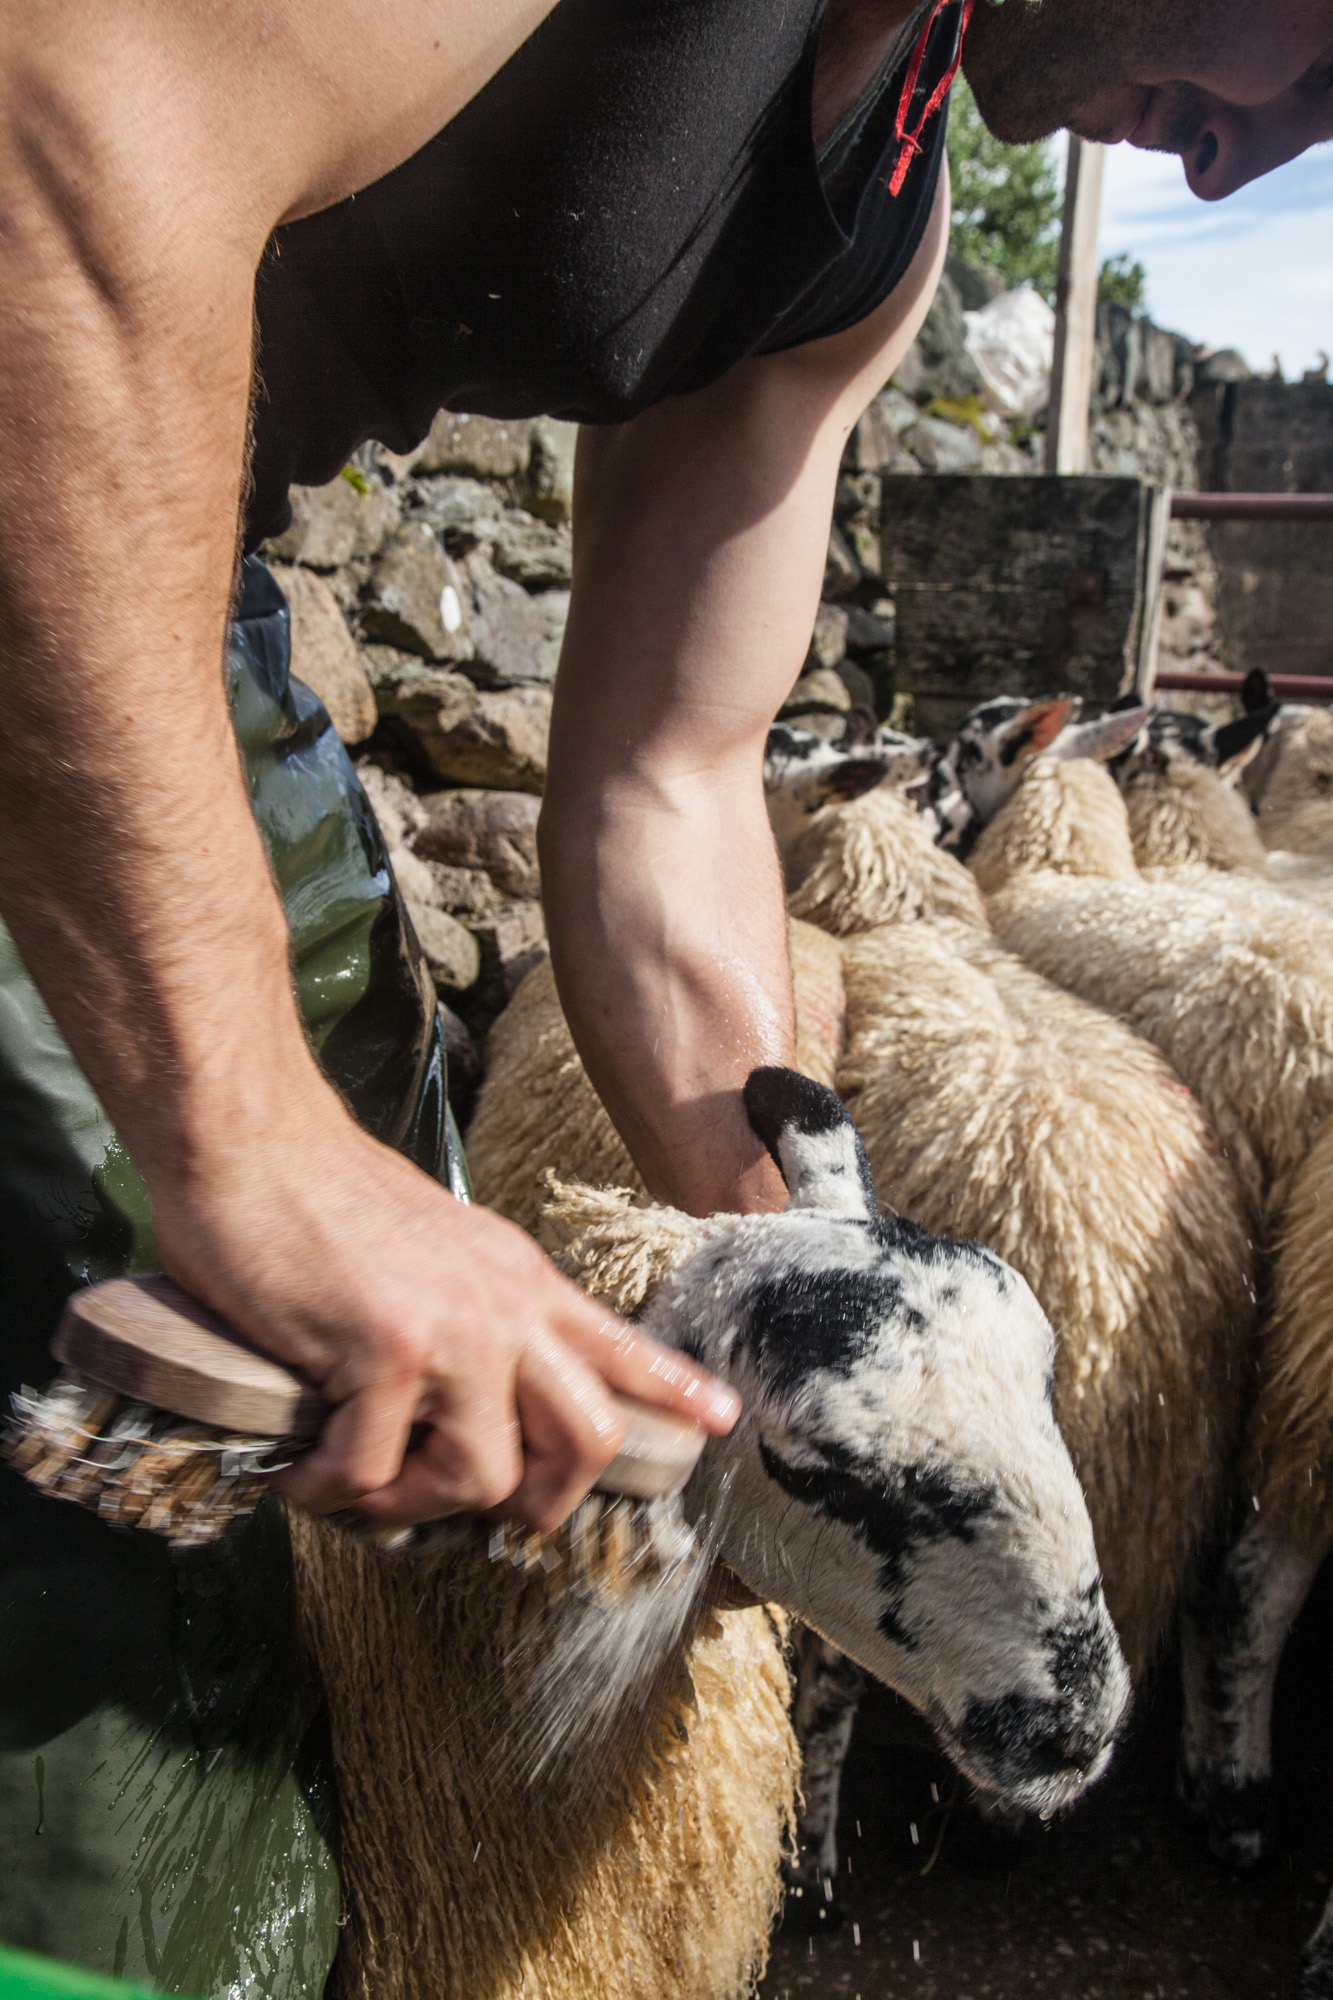 lamb-slaughter-cleaning-preparation-6.jpg